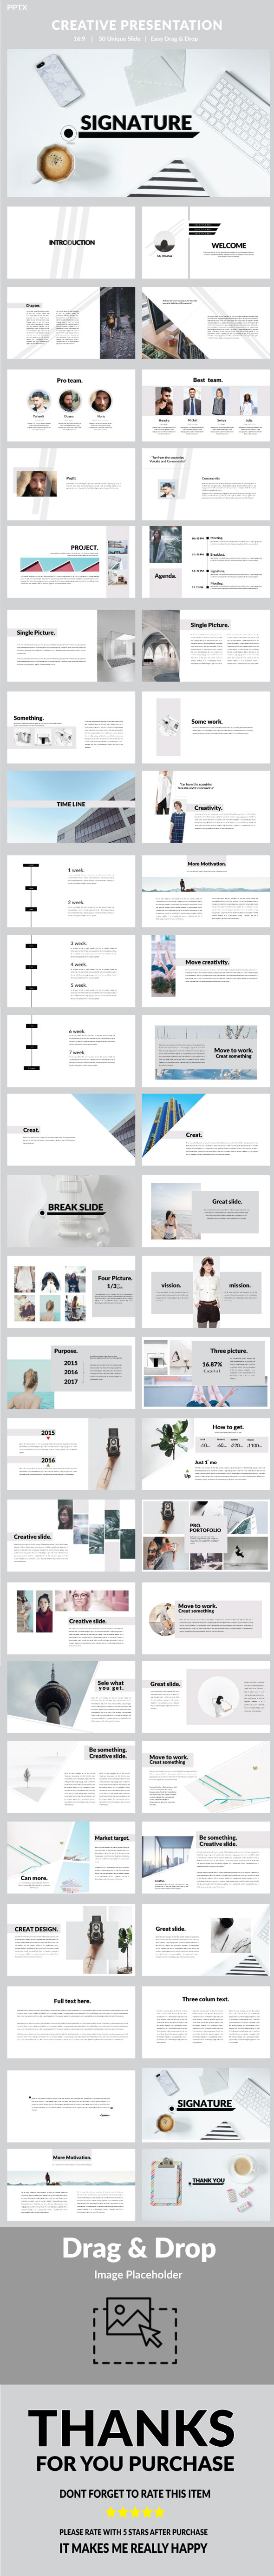 Signature - Multipurpose Powerpoint - PowerPoint Templates Presentation Templates